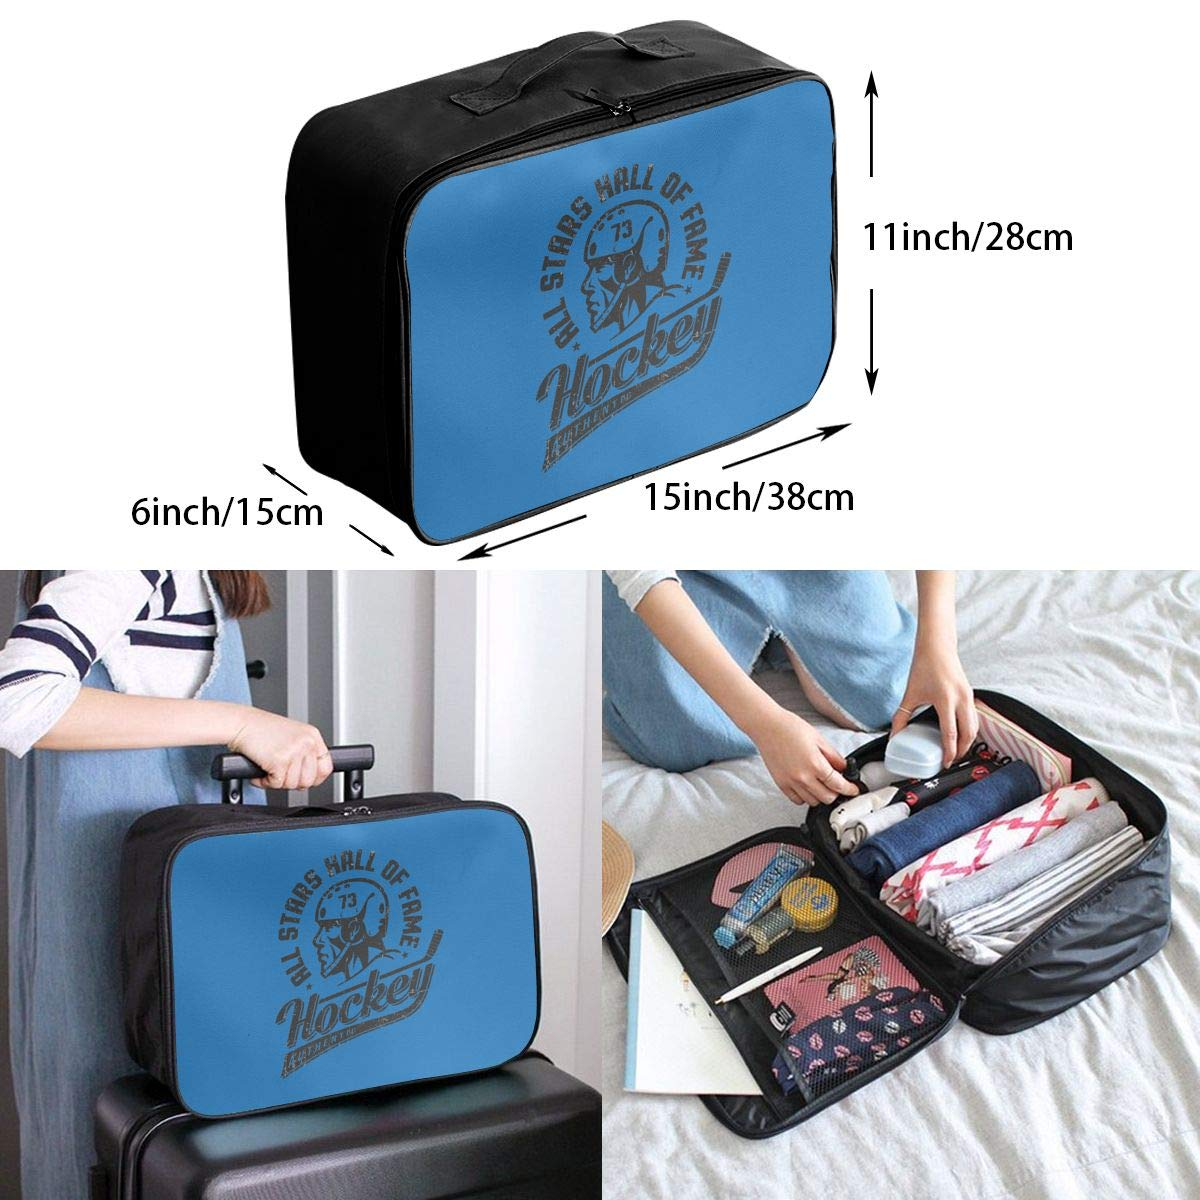 Travel Duffel Bag Waterproof Lightweight Large Capacity Travel Bag Hockey Player In Helmet Logo Portable Carry On Luggage Bag For Travel Camping Sport